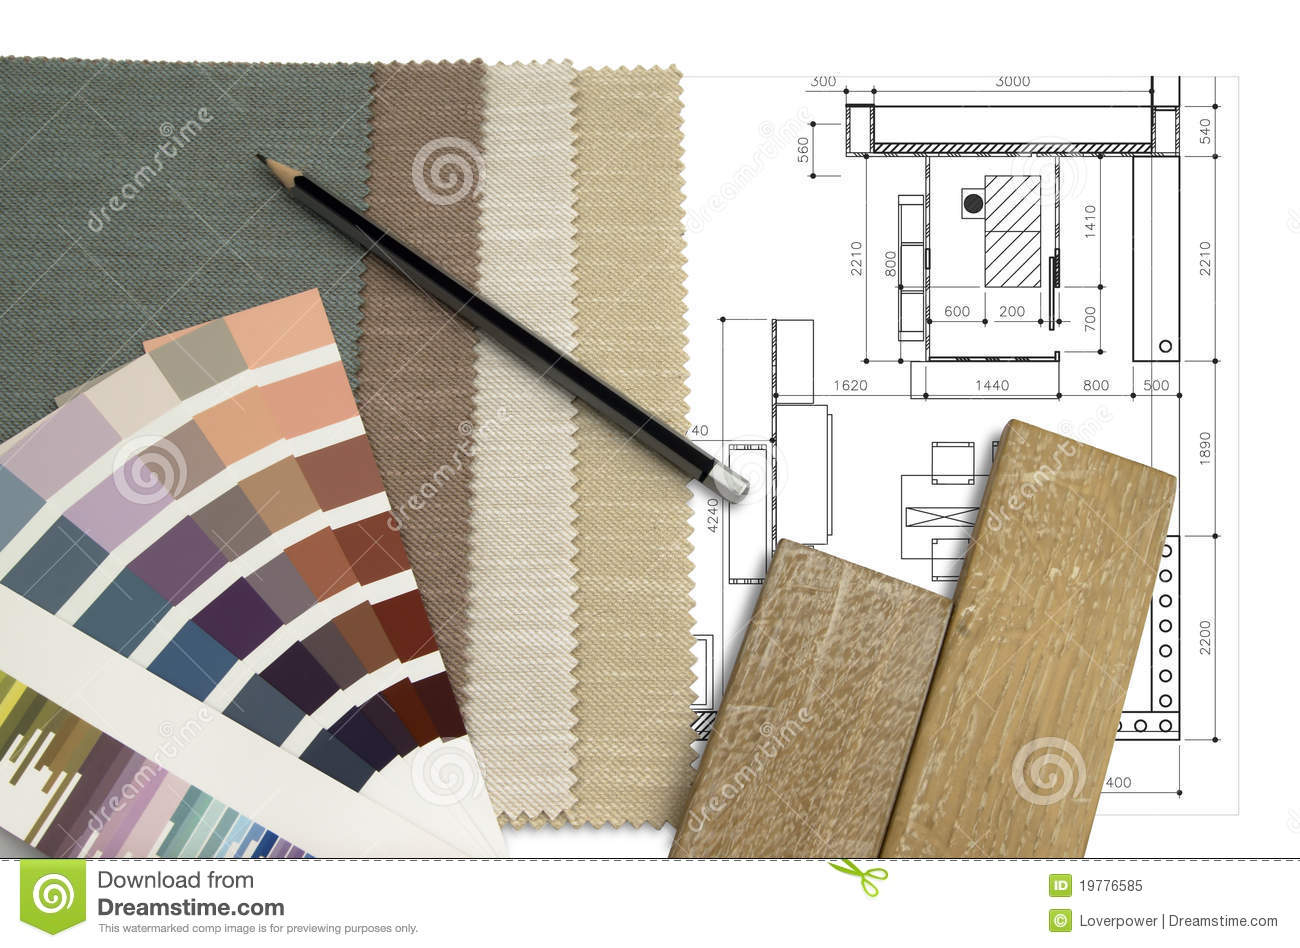 Worktable interior design royalty free stock photo image for About us content for interior design company